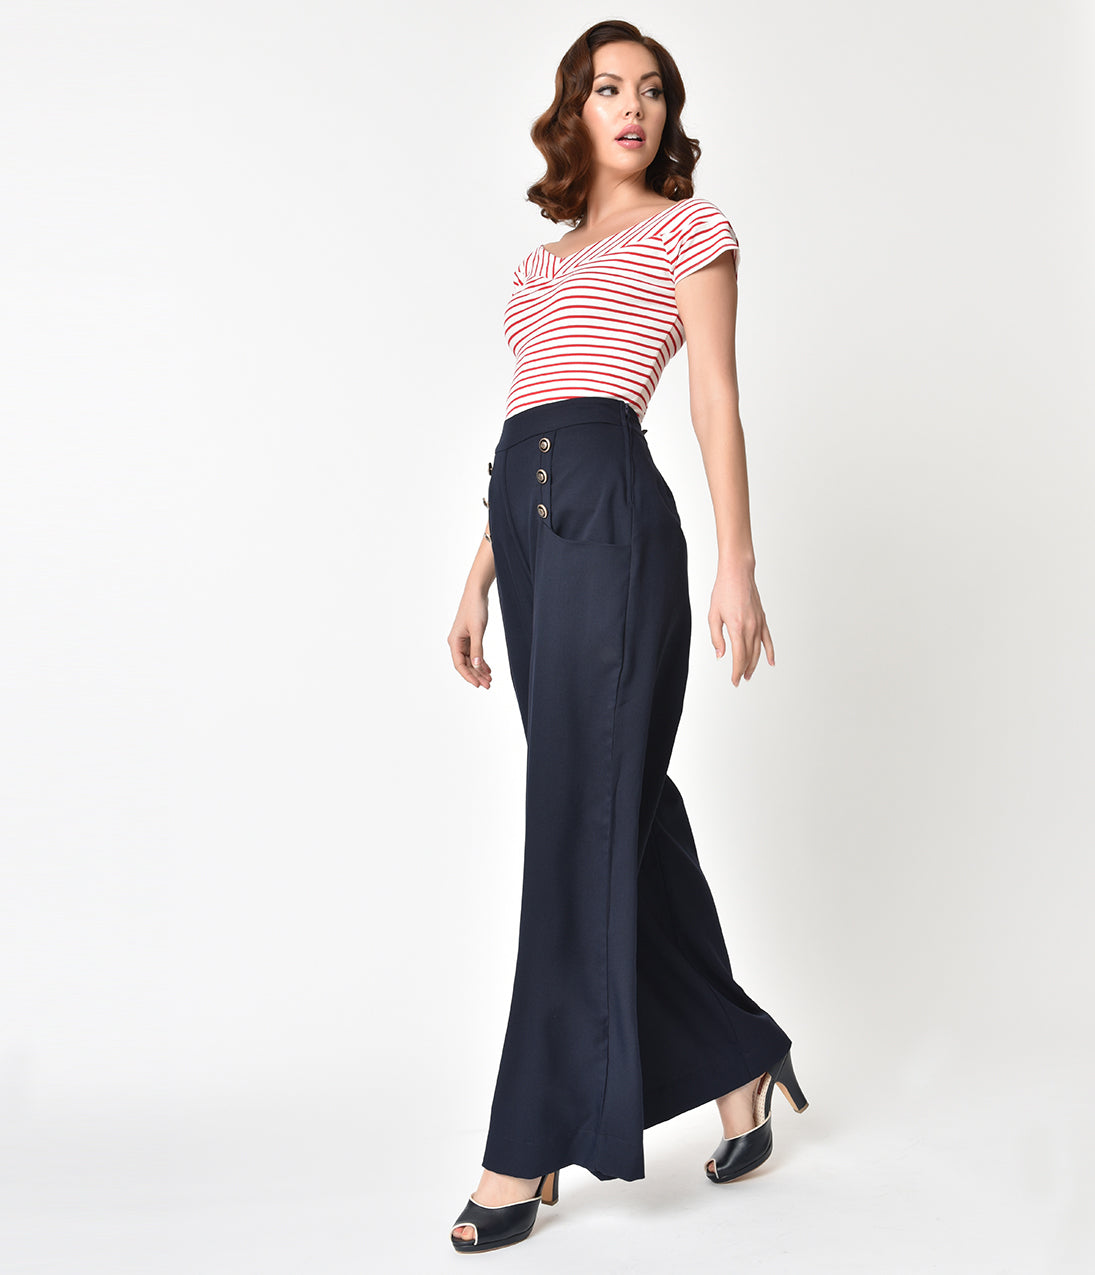 Rosie the Riveter Costume & Outfit Ideas Unique Vintage 1940S Style Midnight Blue High Waist Sailor Ginger Pants $68.00 AT vintagedancer.com